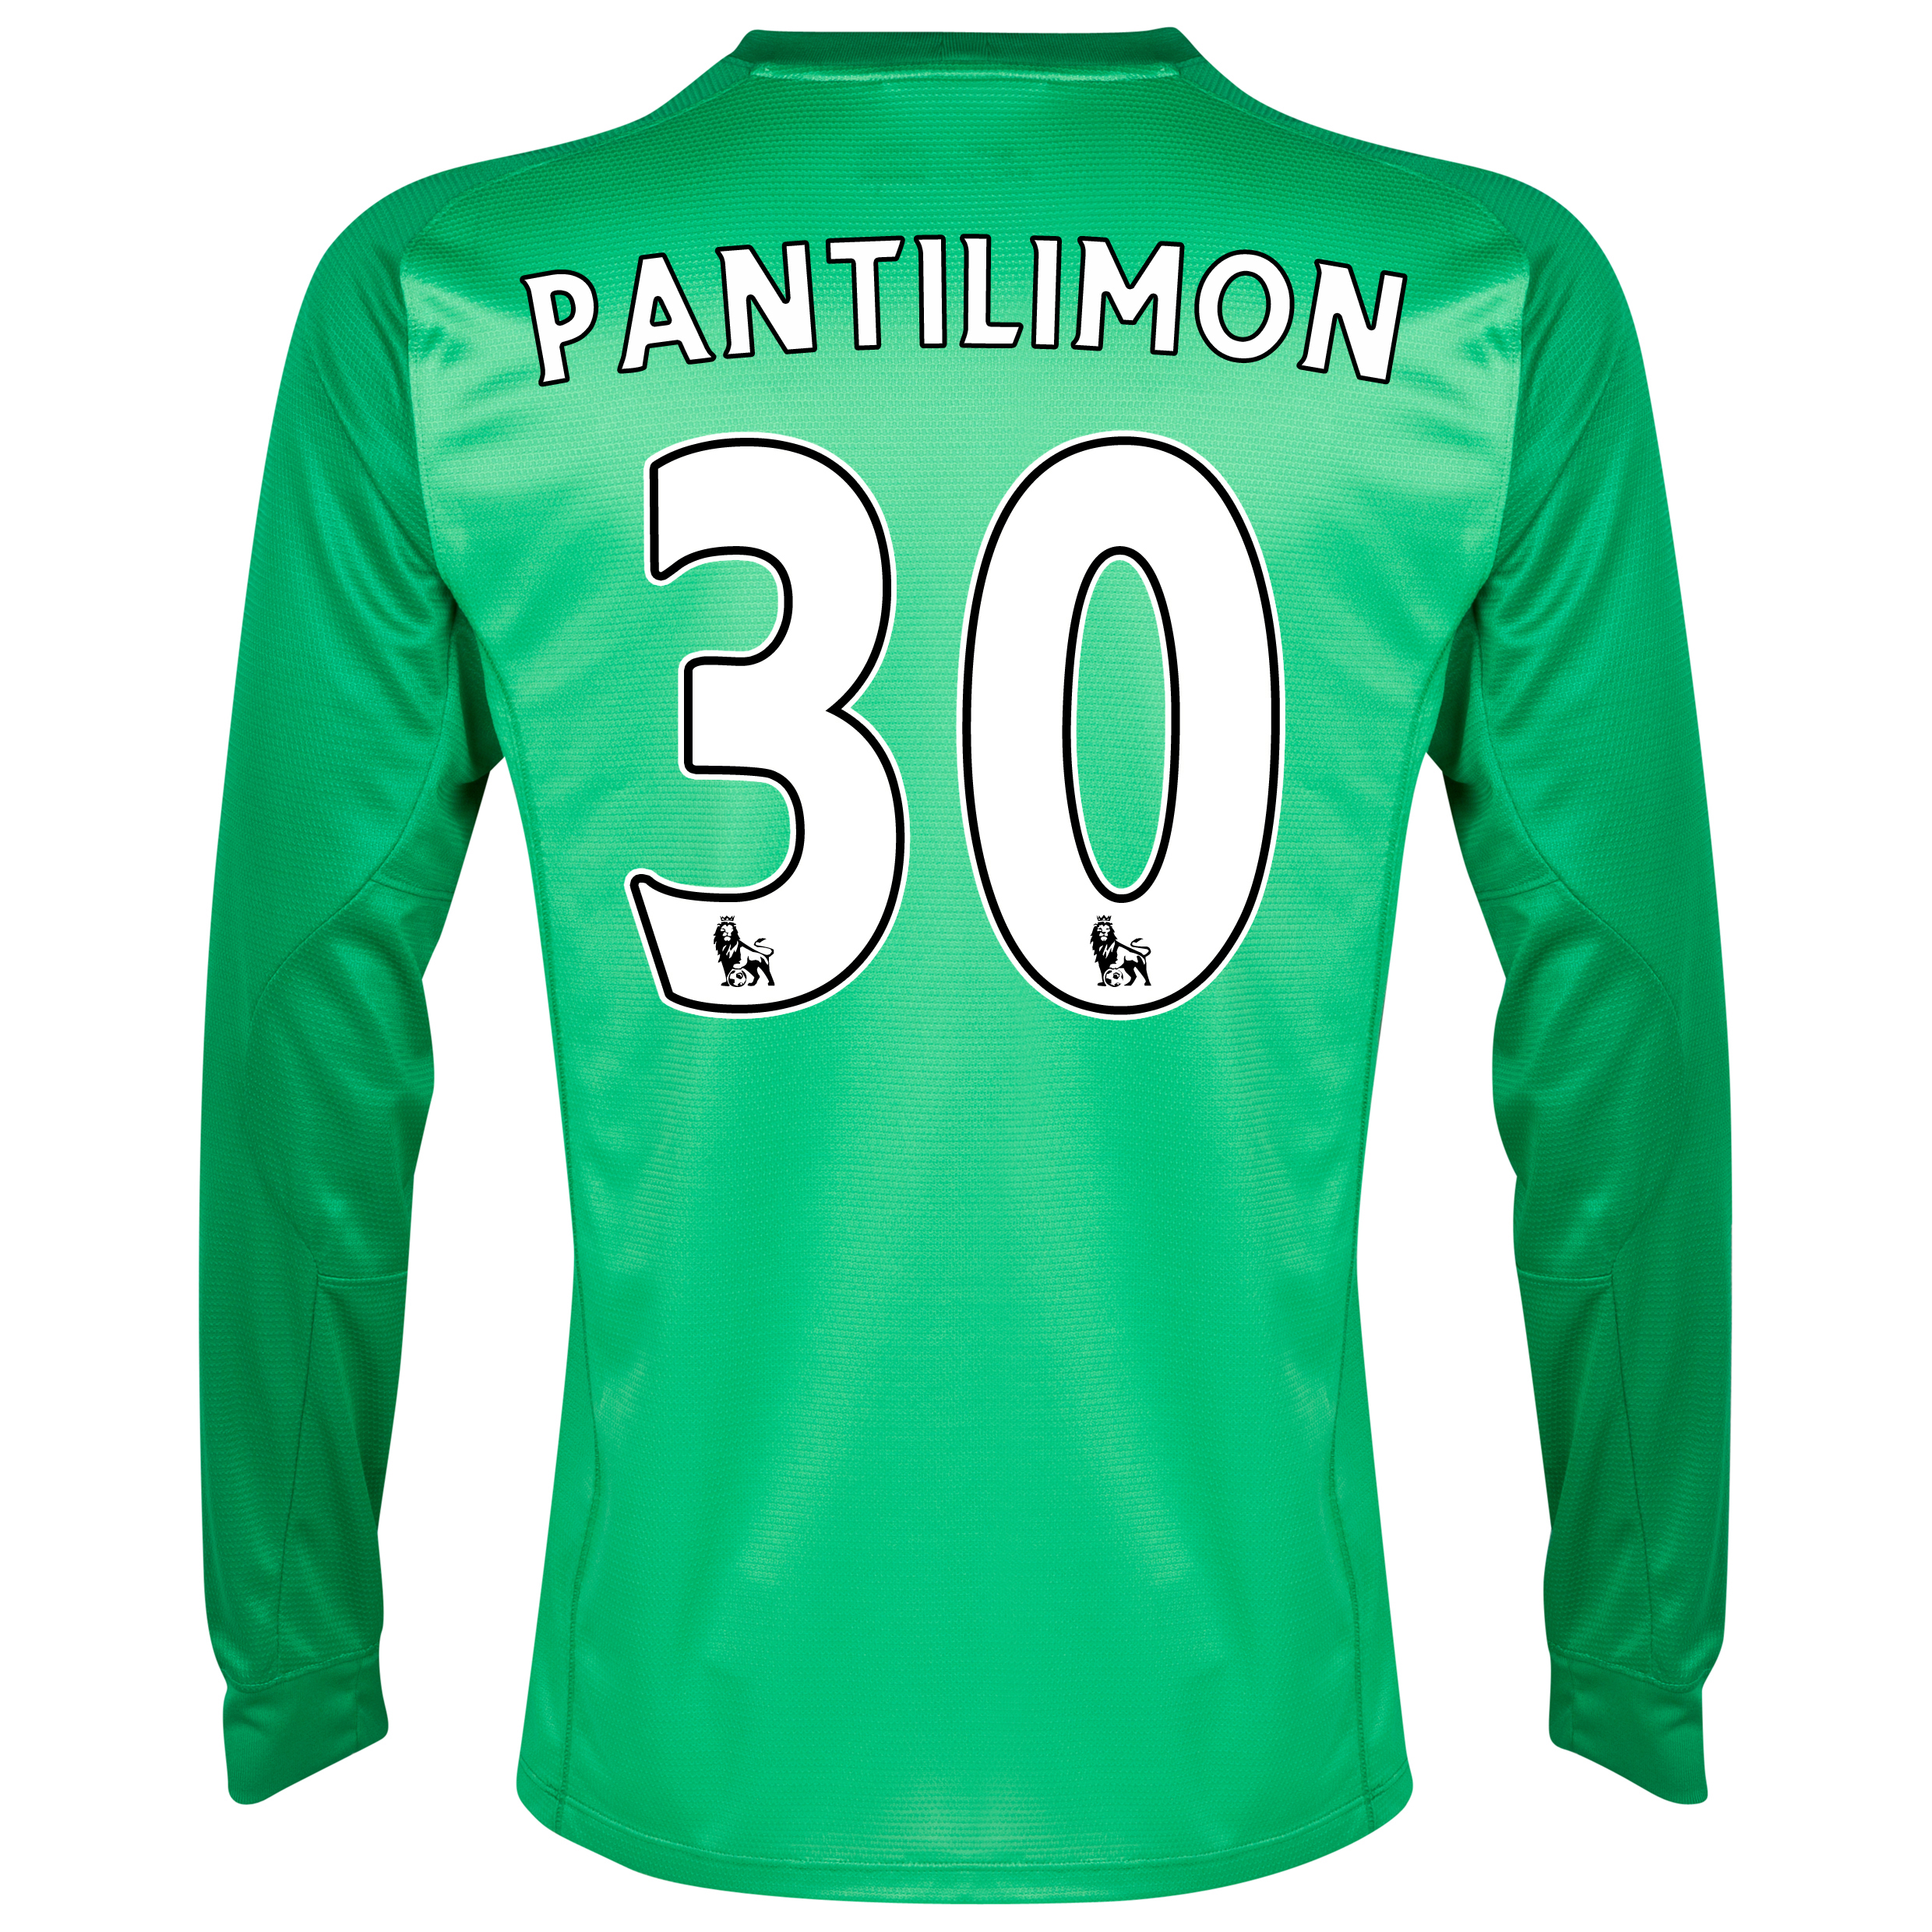 Manchester City Option 1 Goalkeeper Shirt 2013/14 - Junior - Green with Pantilimon 30 printing